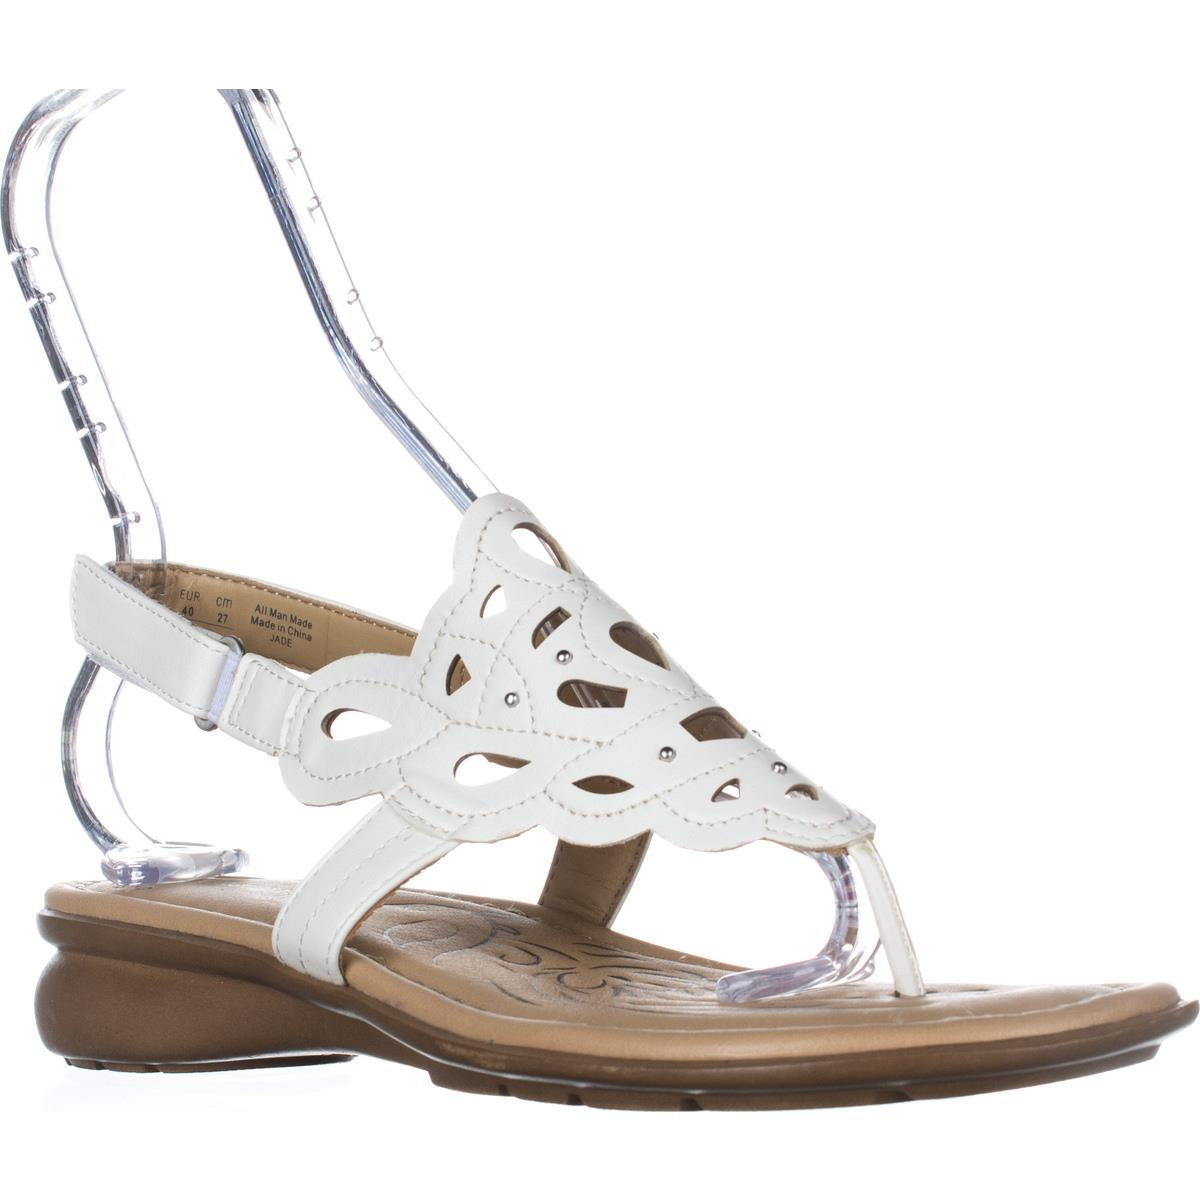 Womens Naturalizer Jade Thong Round Toe Sandals, White by Naturalizer